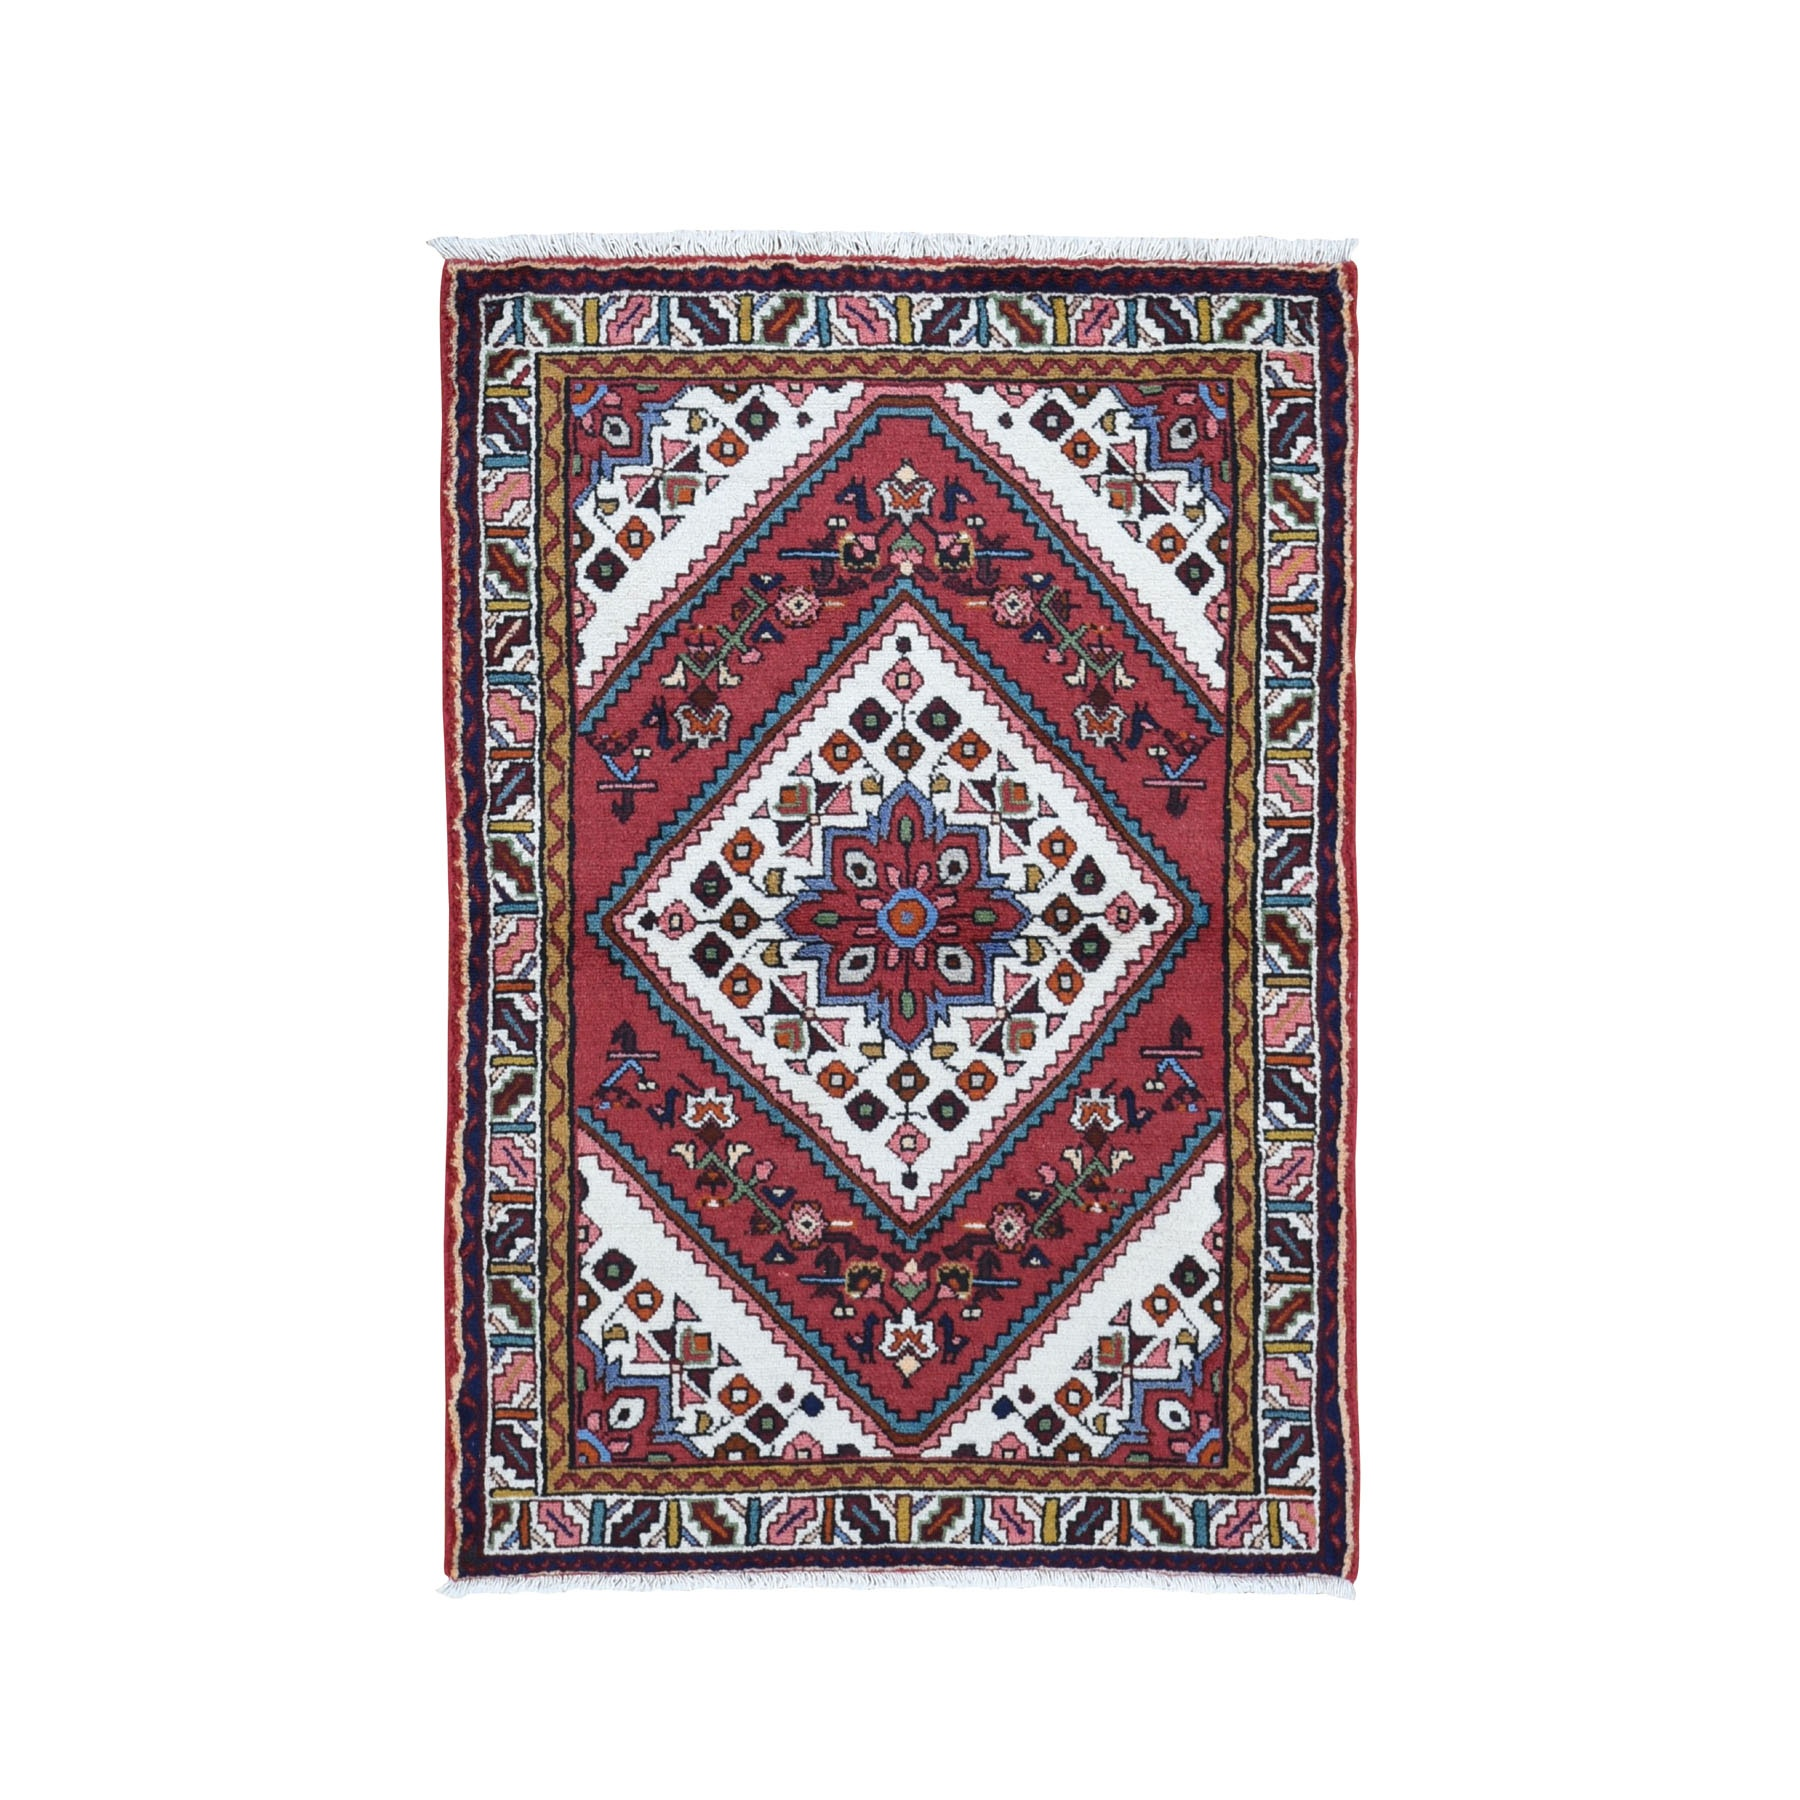 "3'5""X5'1""  Red New Persian Hamadan Pure Wool Hand Knotted Oriental Rug moad97e6"